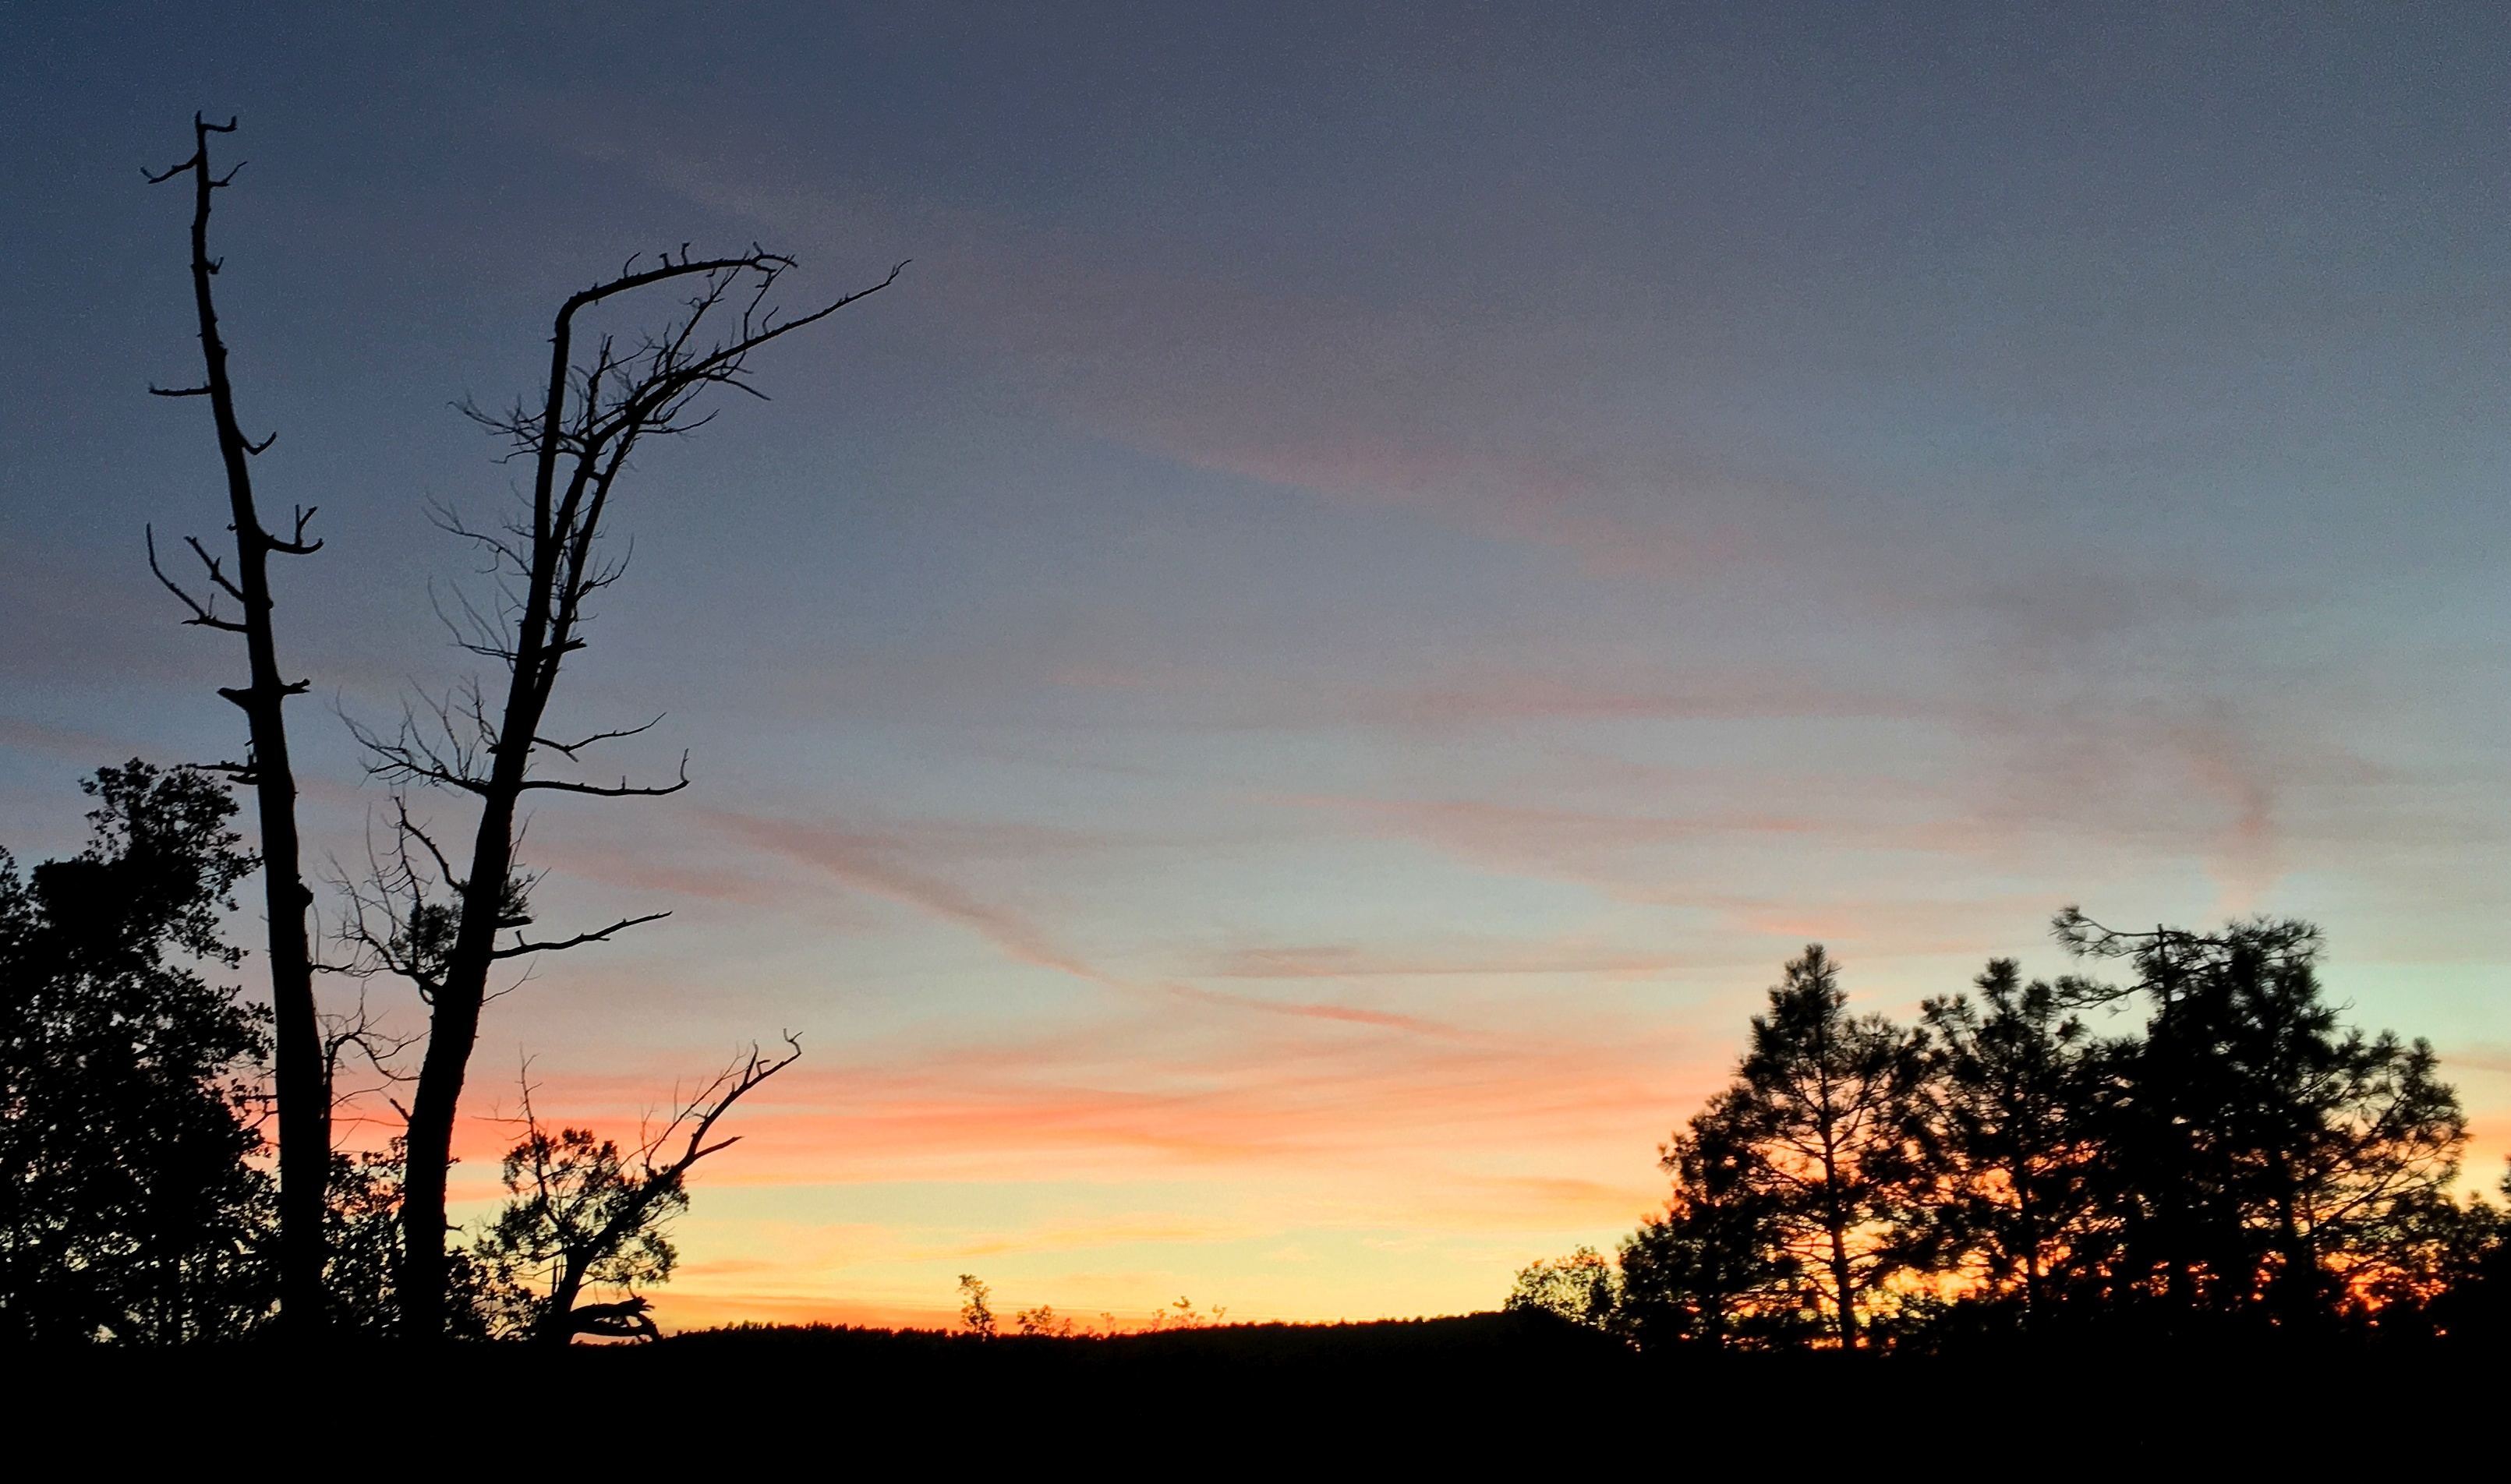 It's a Different Show Every Night, Dusk, Outdoor, Serene, Sky, HQ Photo